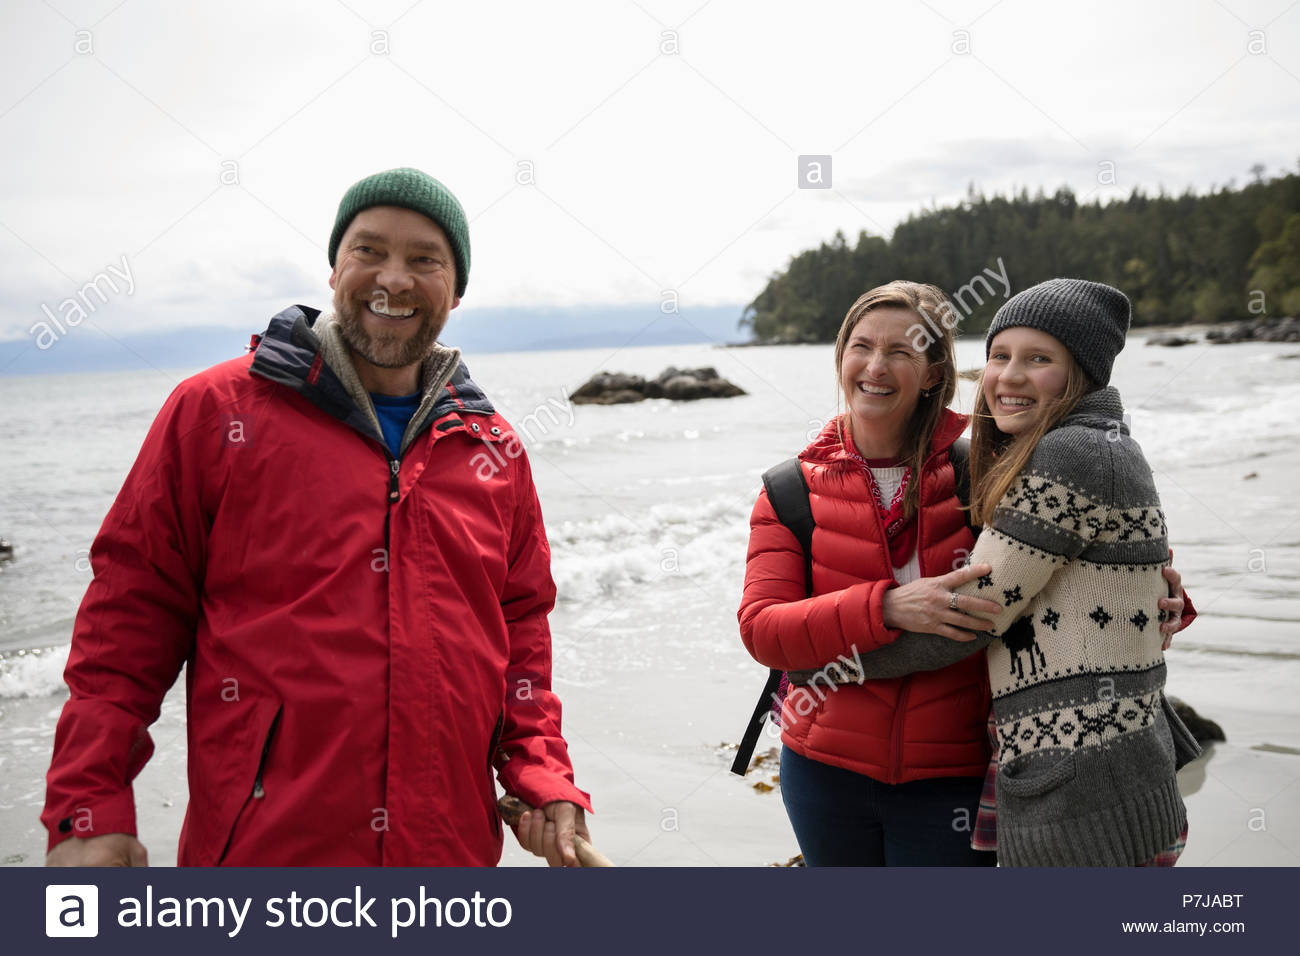 Happy family on beach robuste Photo Stock